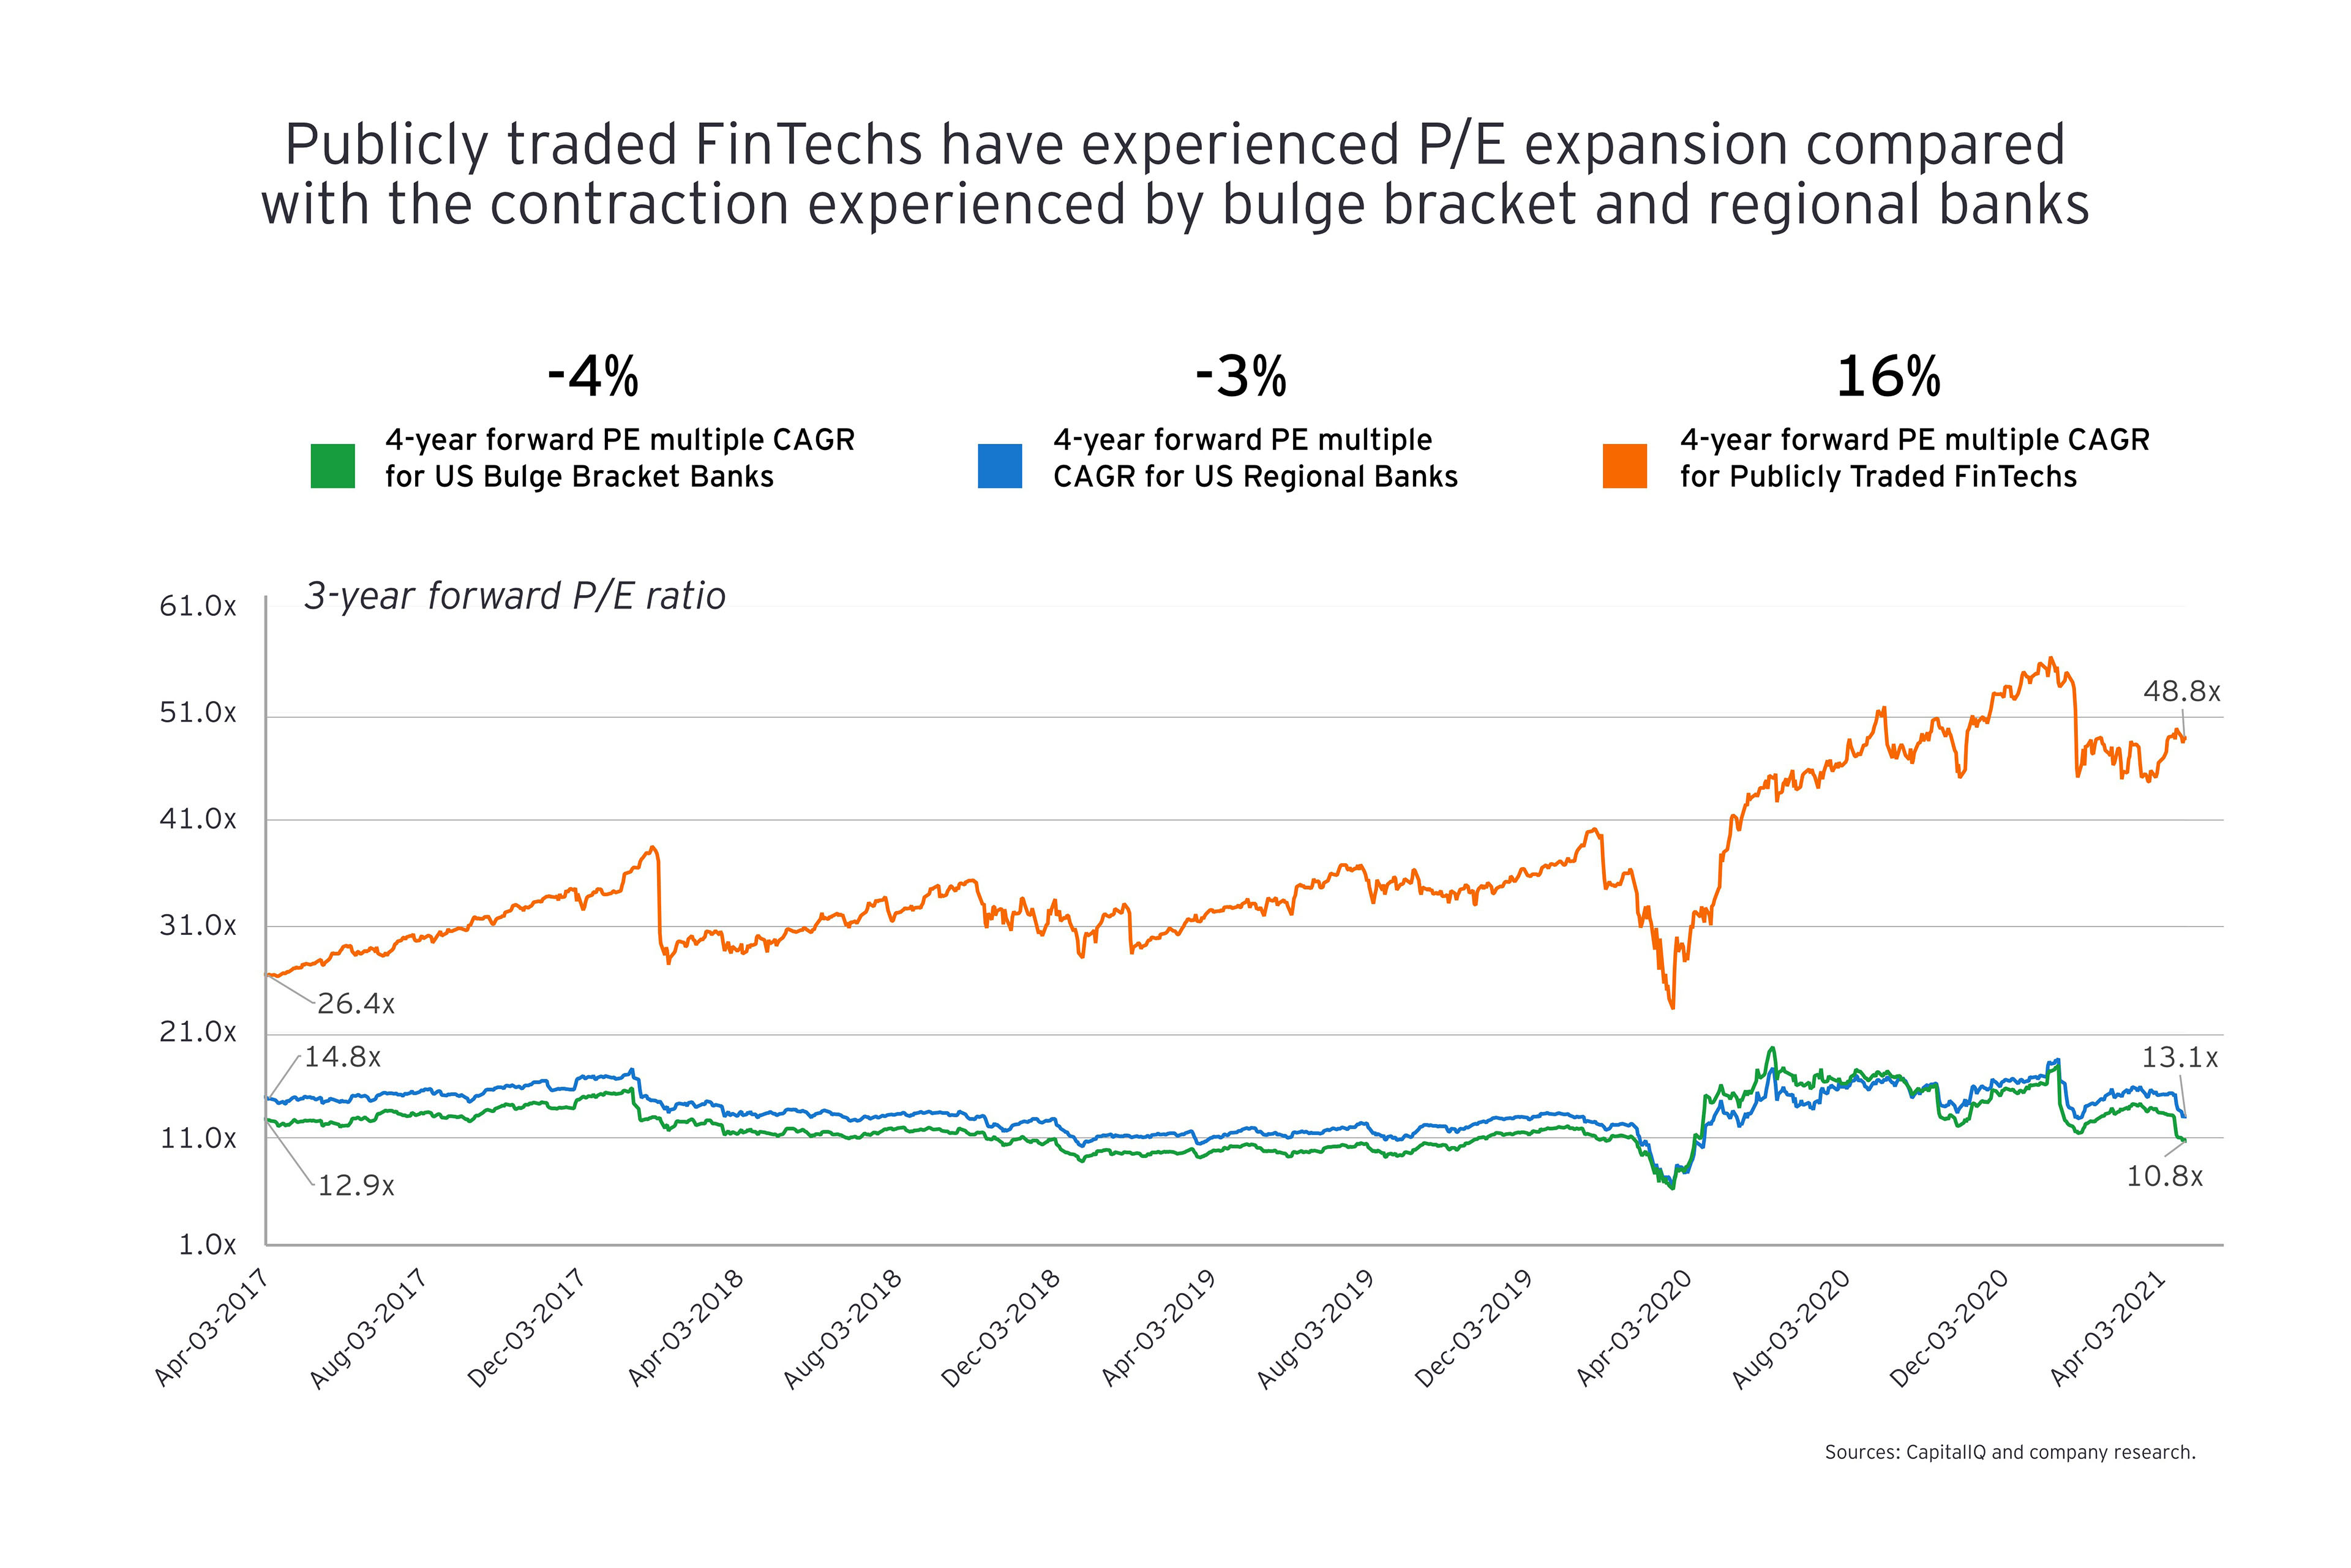 Fintechs P/E expansion compared with the contraction